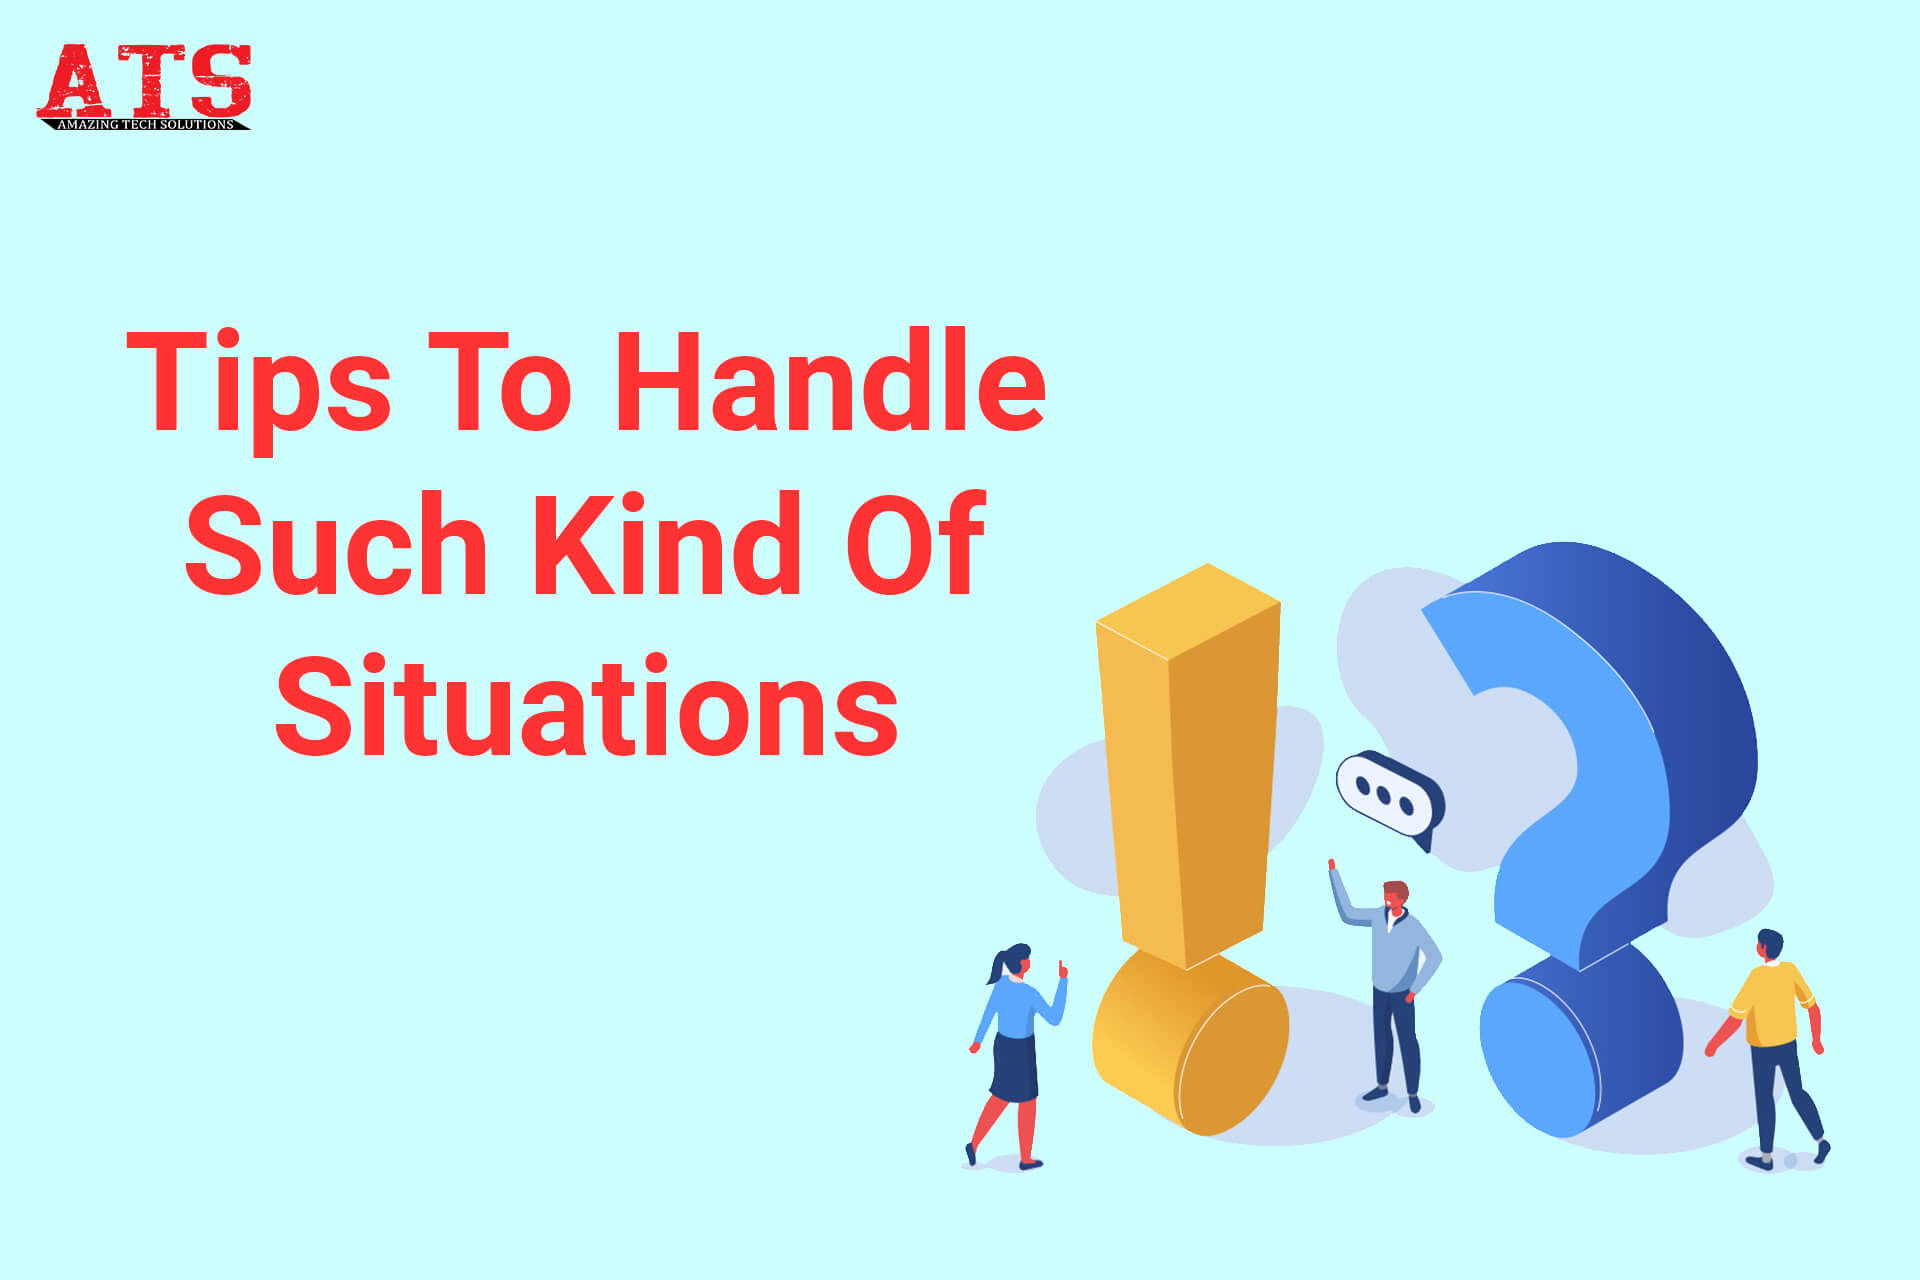 Tips To Handle Such Kind Of Situations